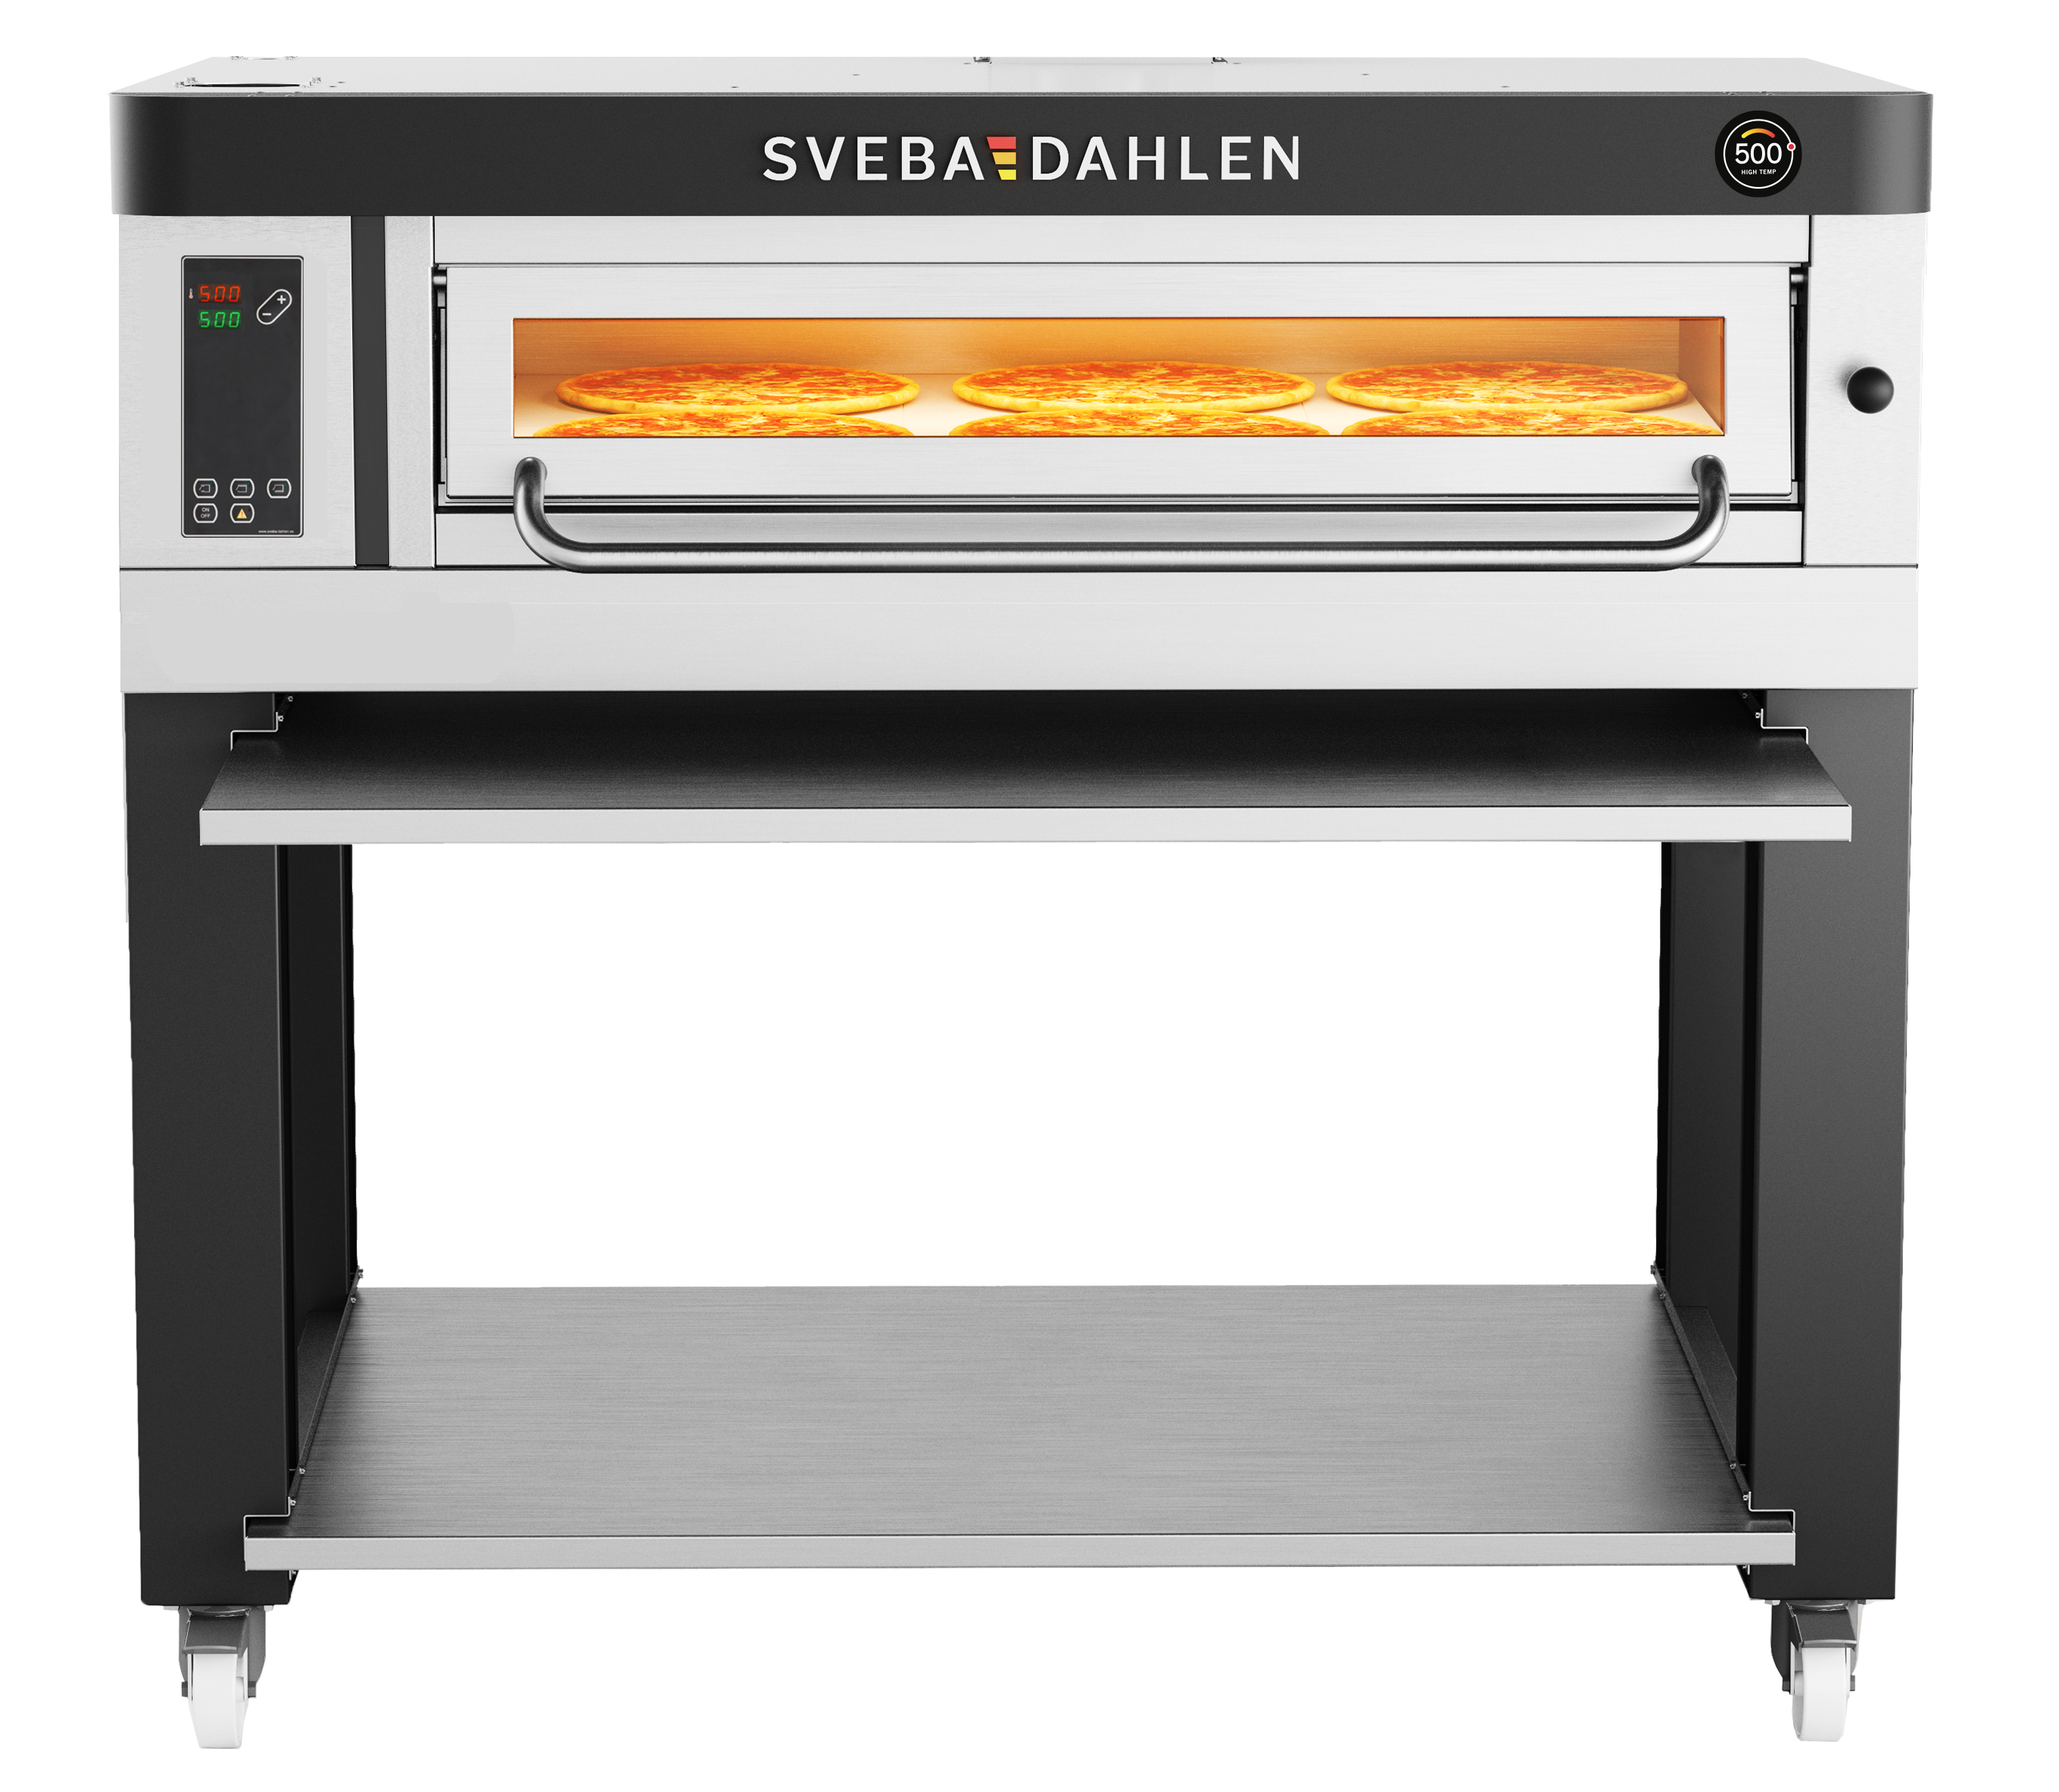 Pizza Oven P601 High Temp 500 degrees Sveba Dahlen